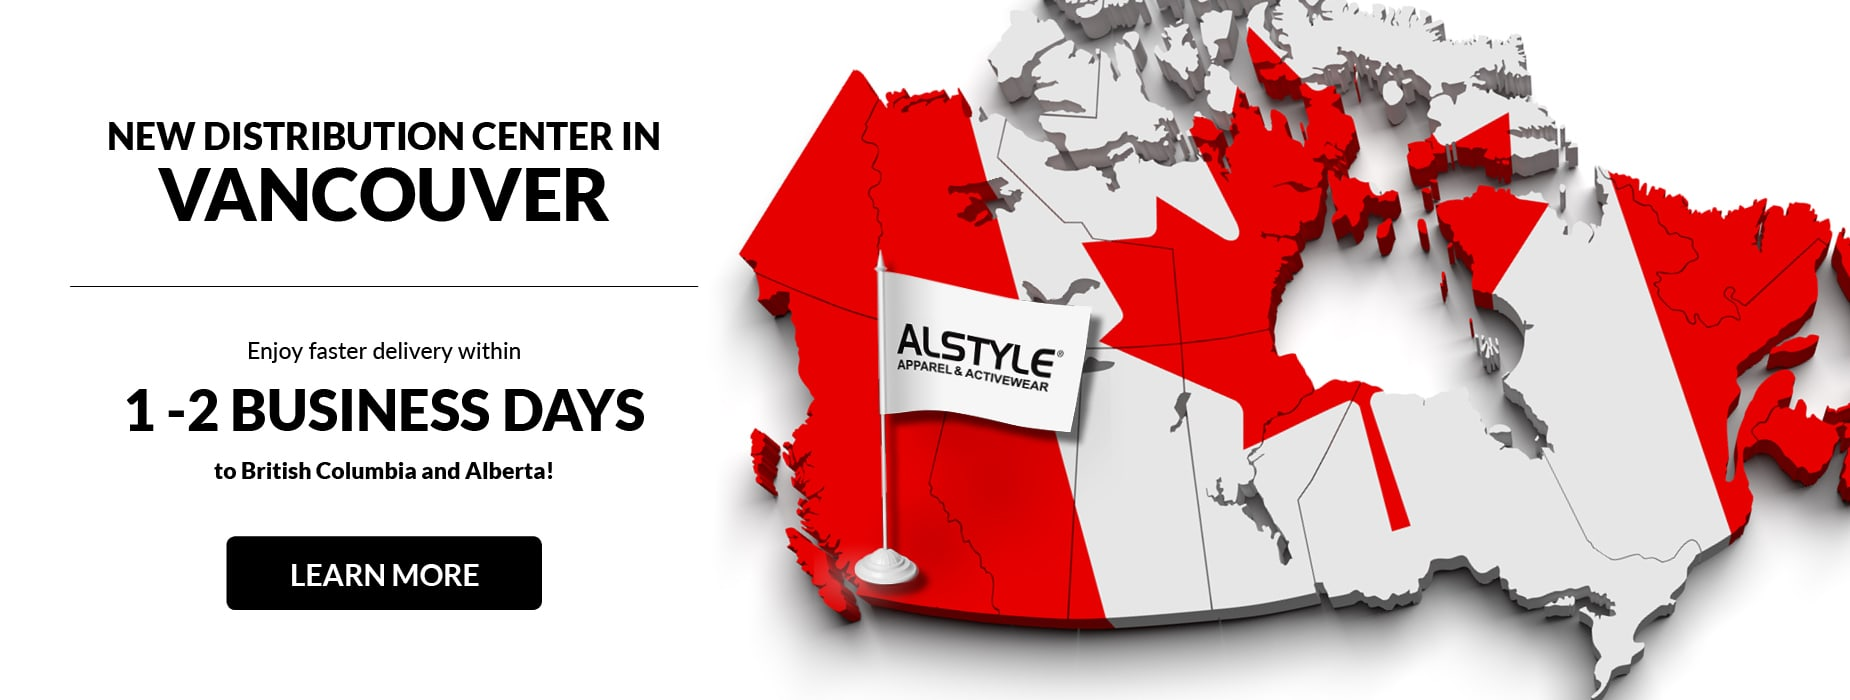 New Vancouver Distribution Center for Alstyle Canada